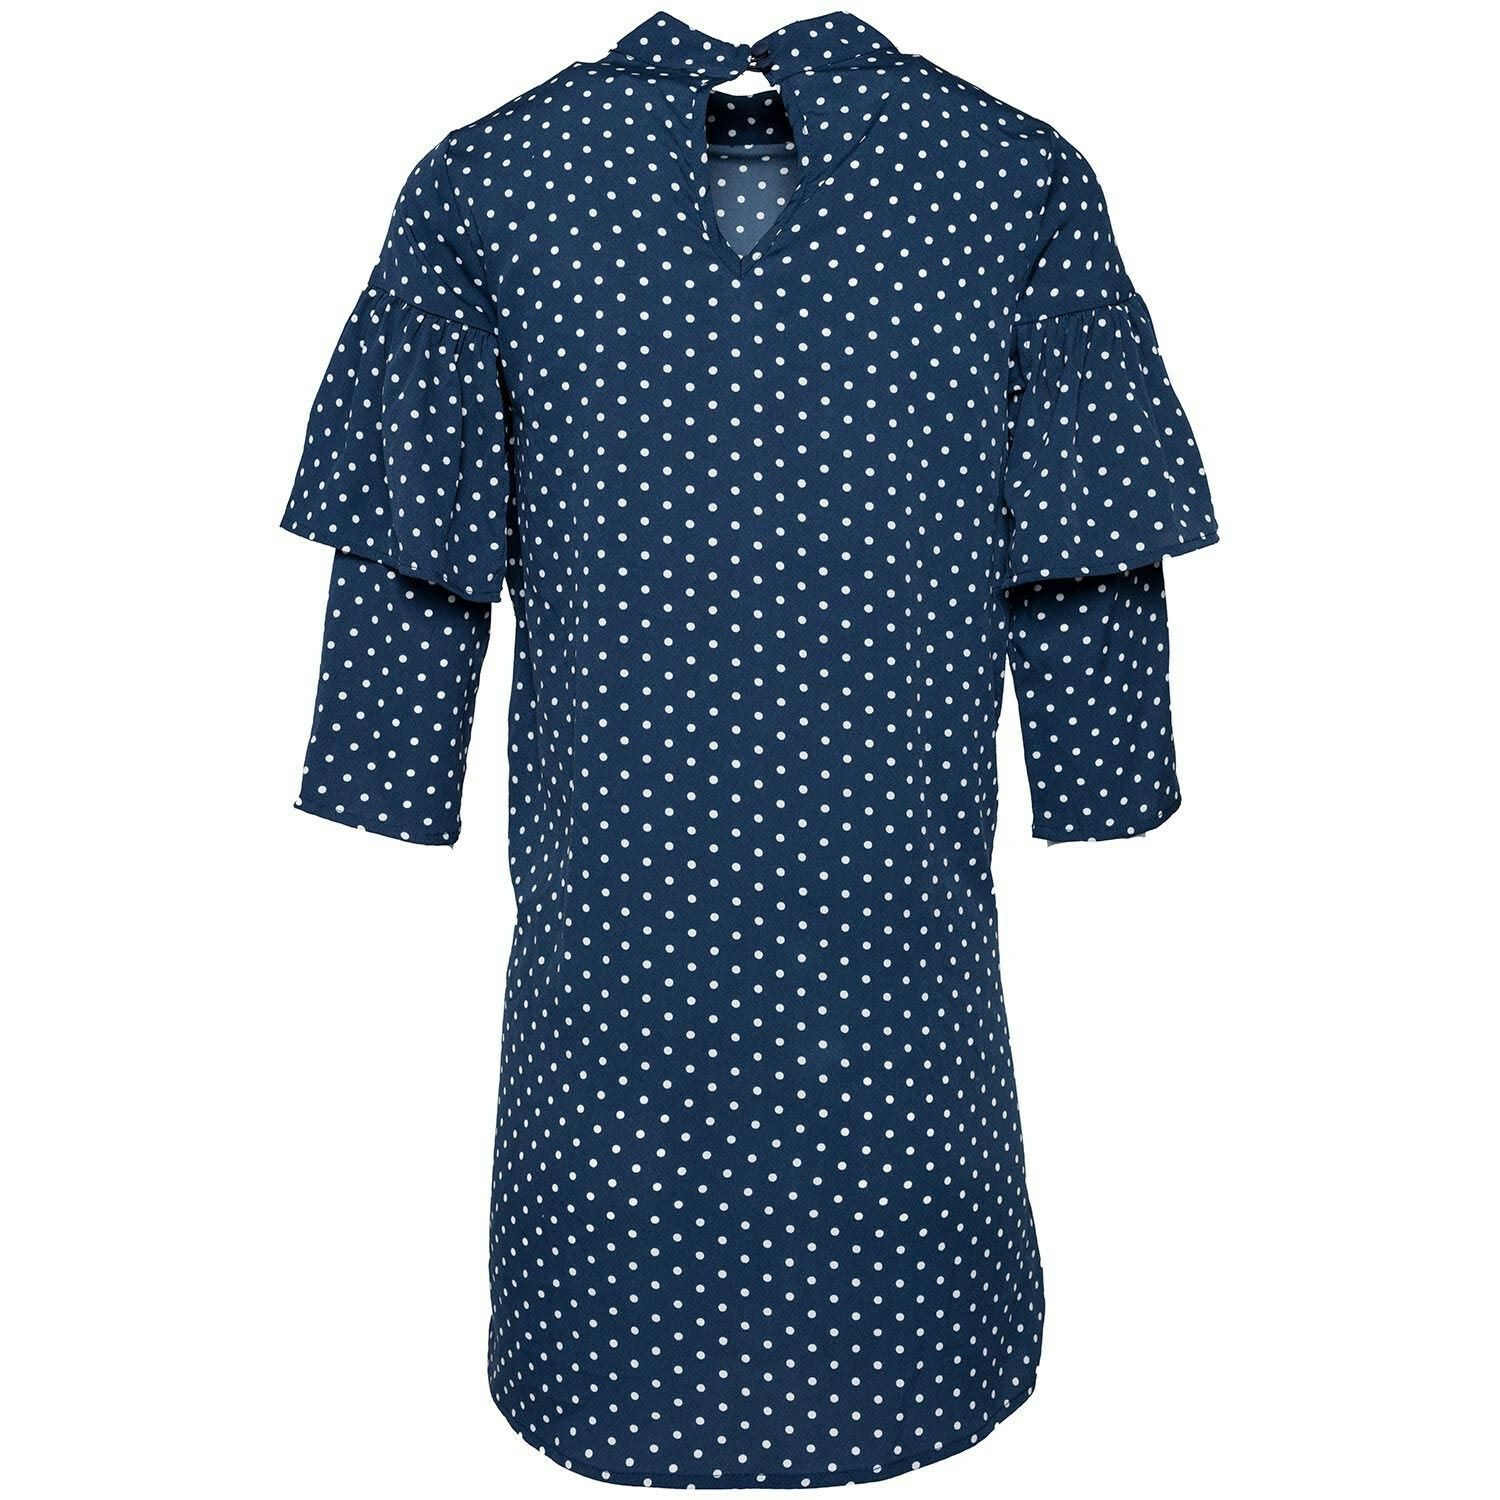 POLKADOT RUFFLE DRESS